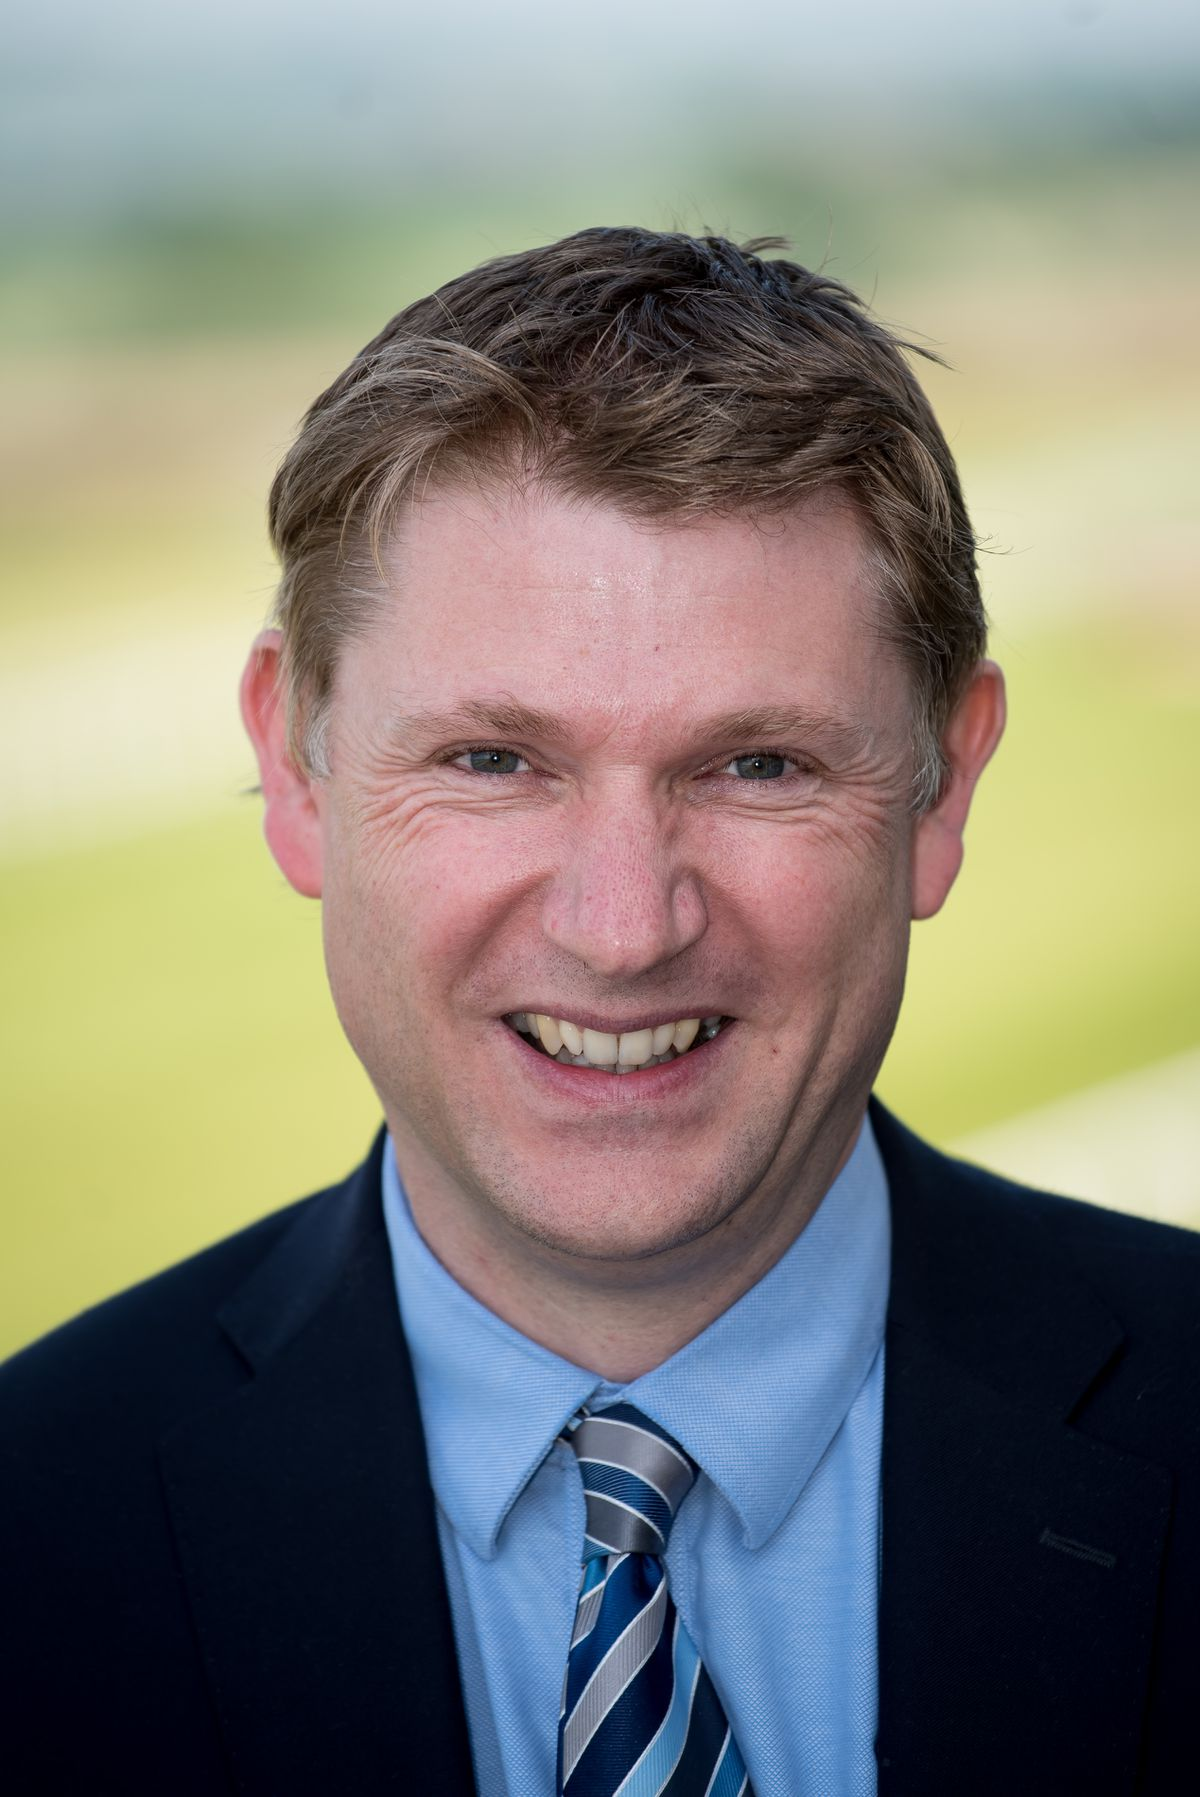 James Staniforth, Marches LEP board member and the organisation's Skills Champion